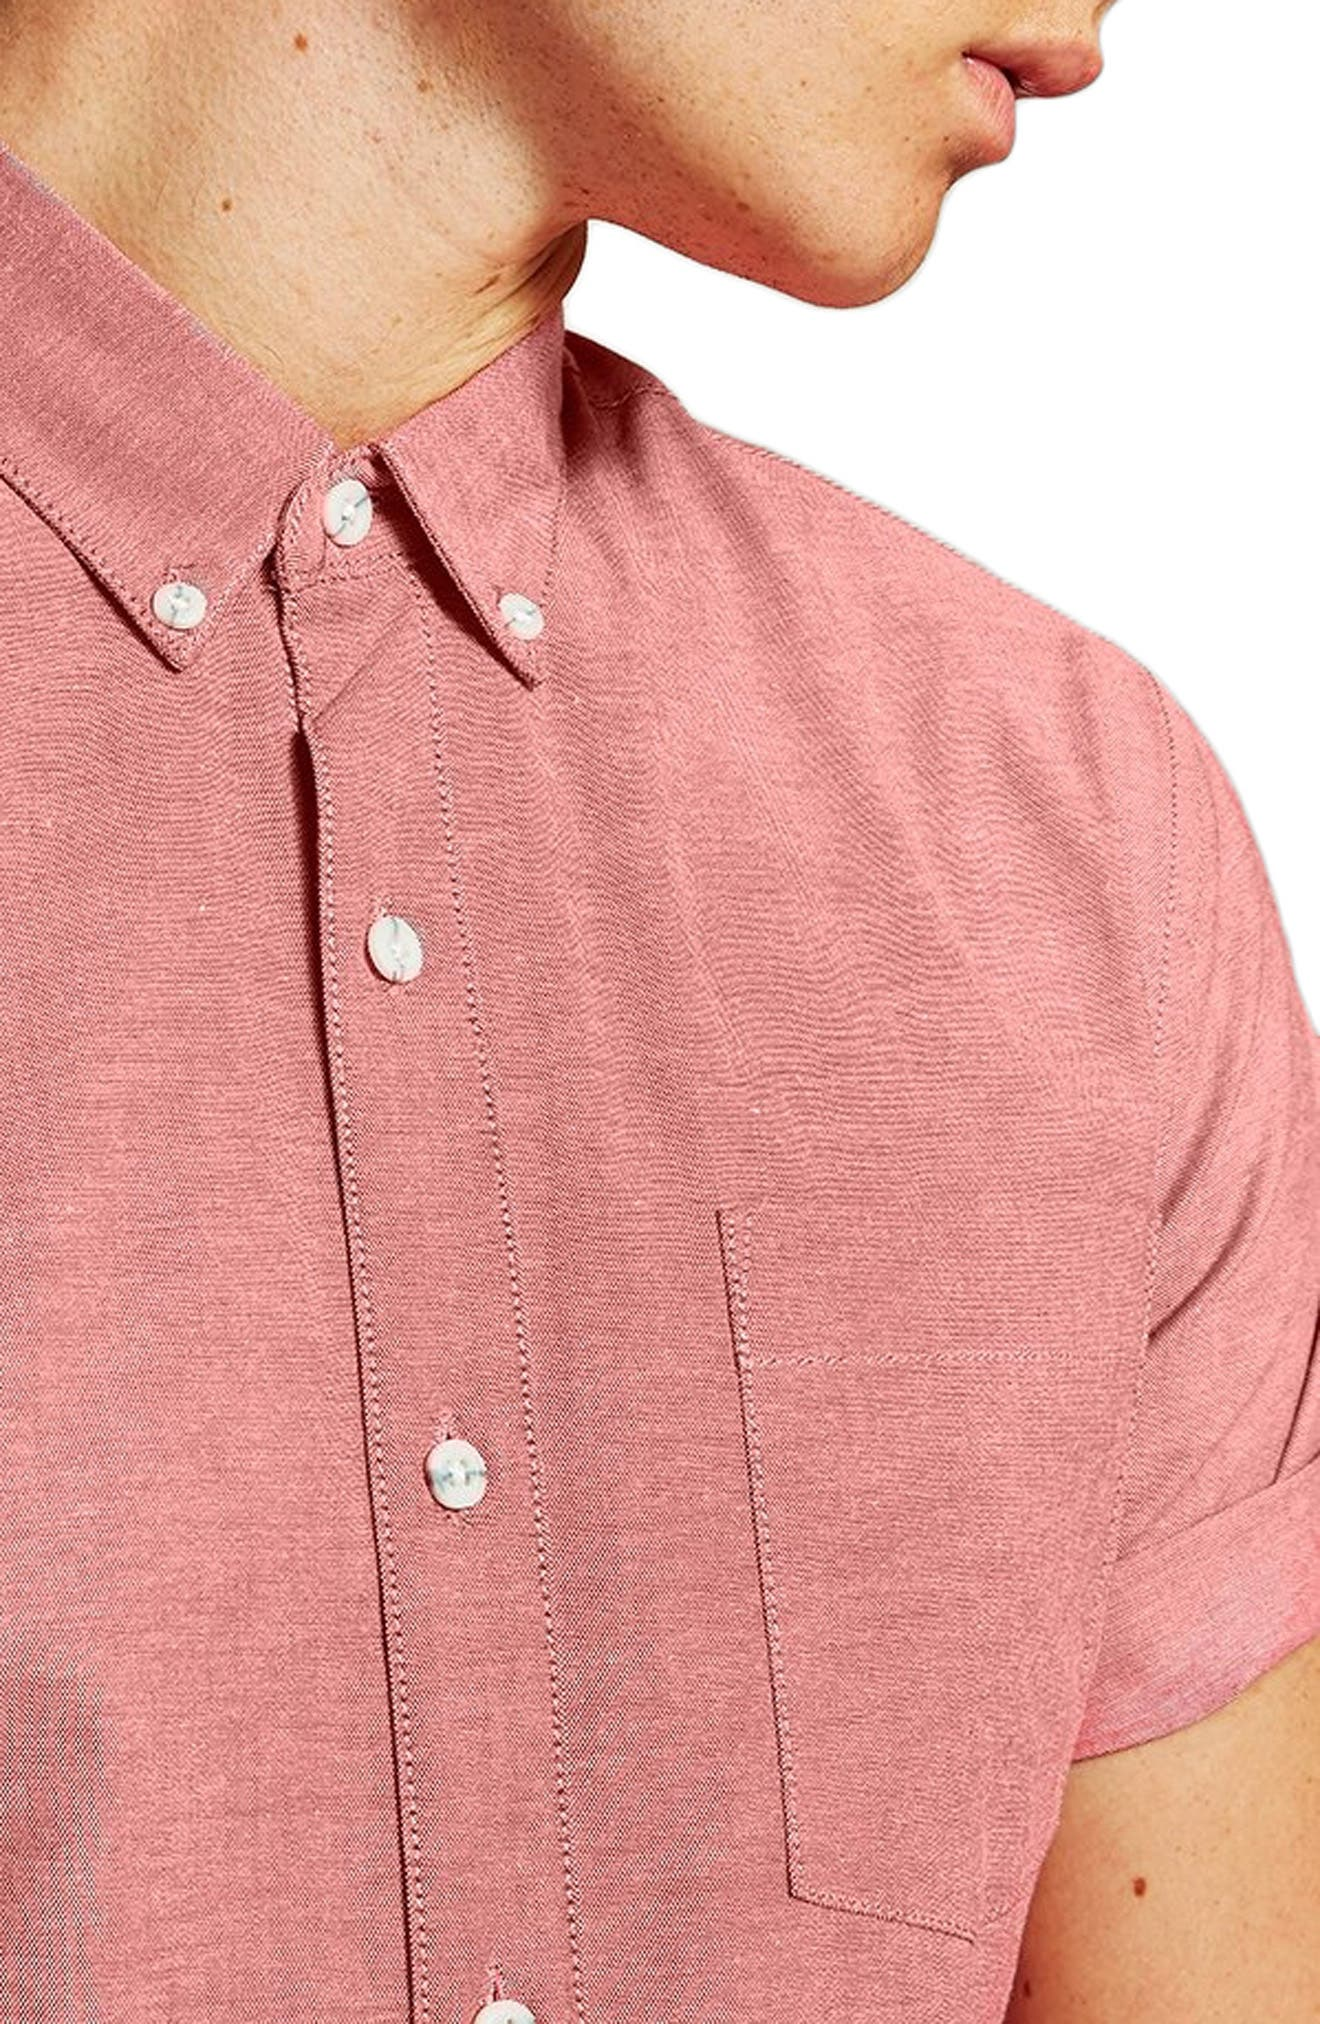 Muscle Fit Oxford Shirt,                             Alternate thumbnail 3, color,                             RED MULTI